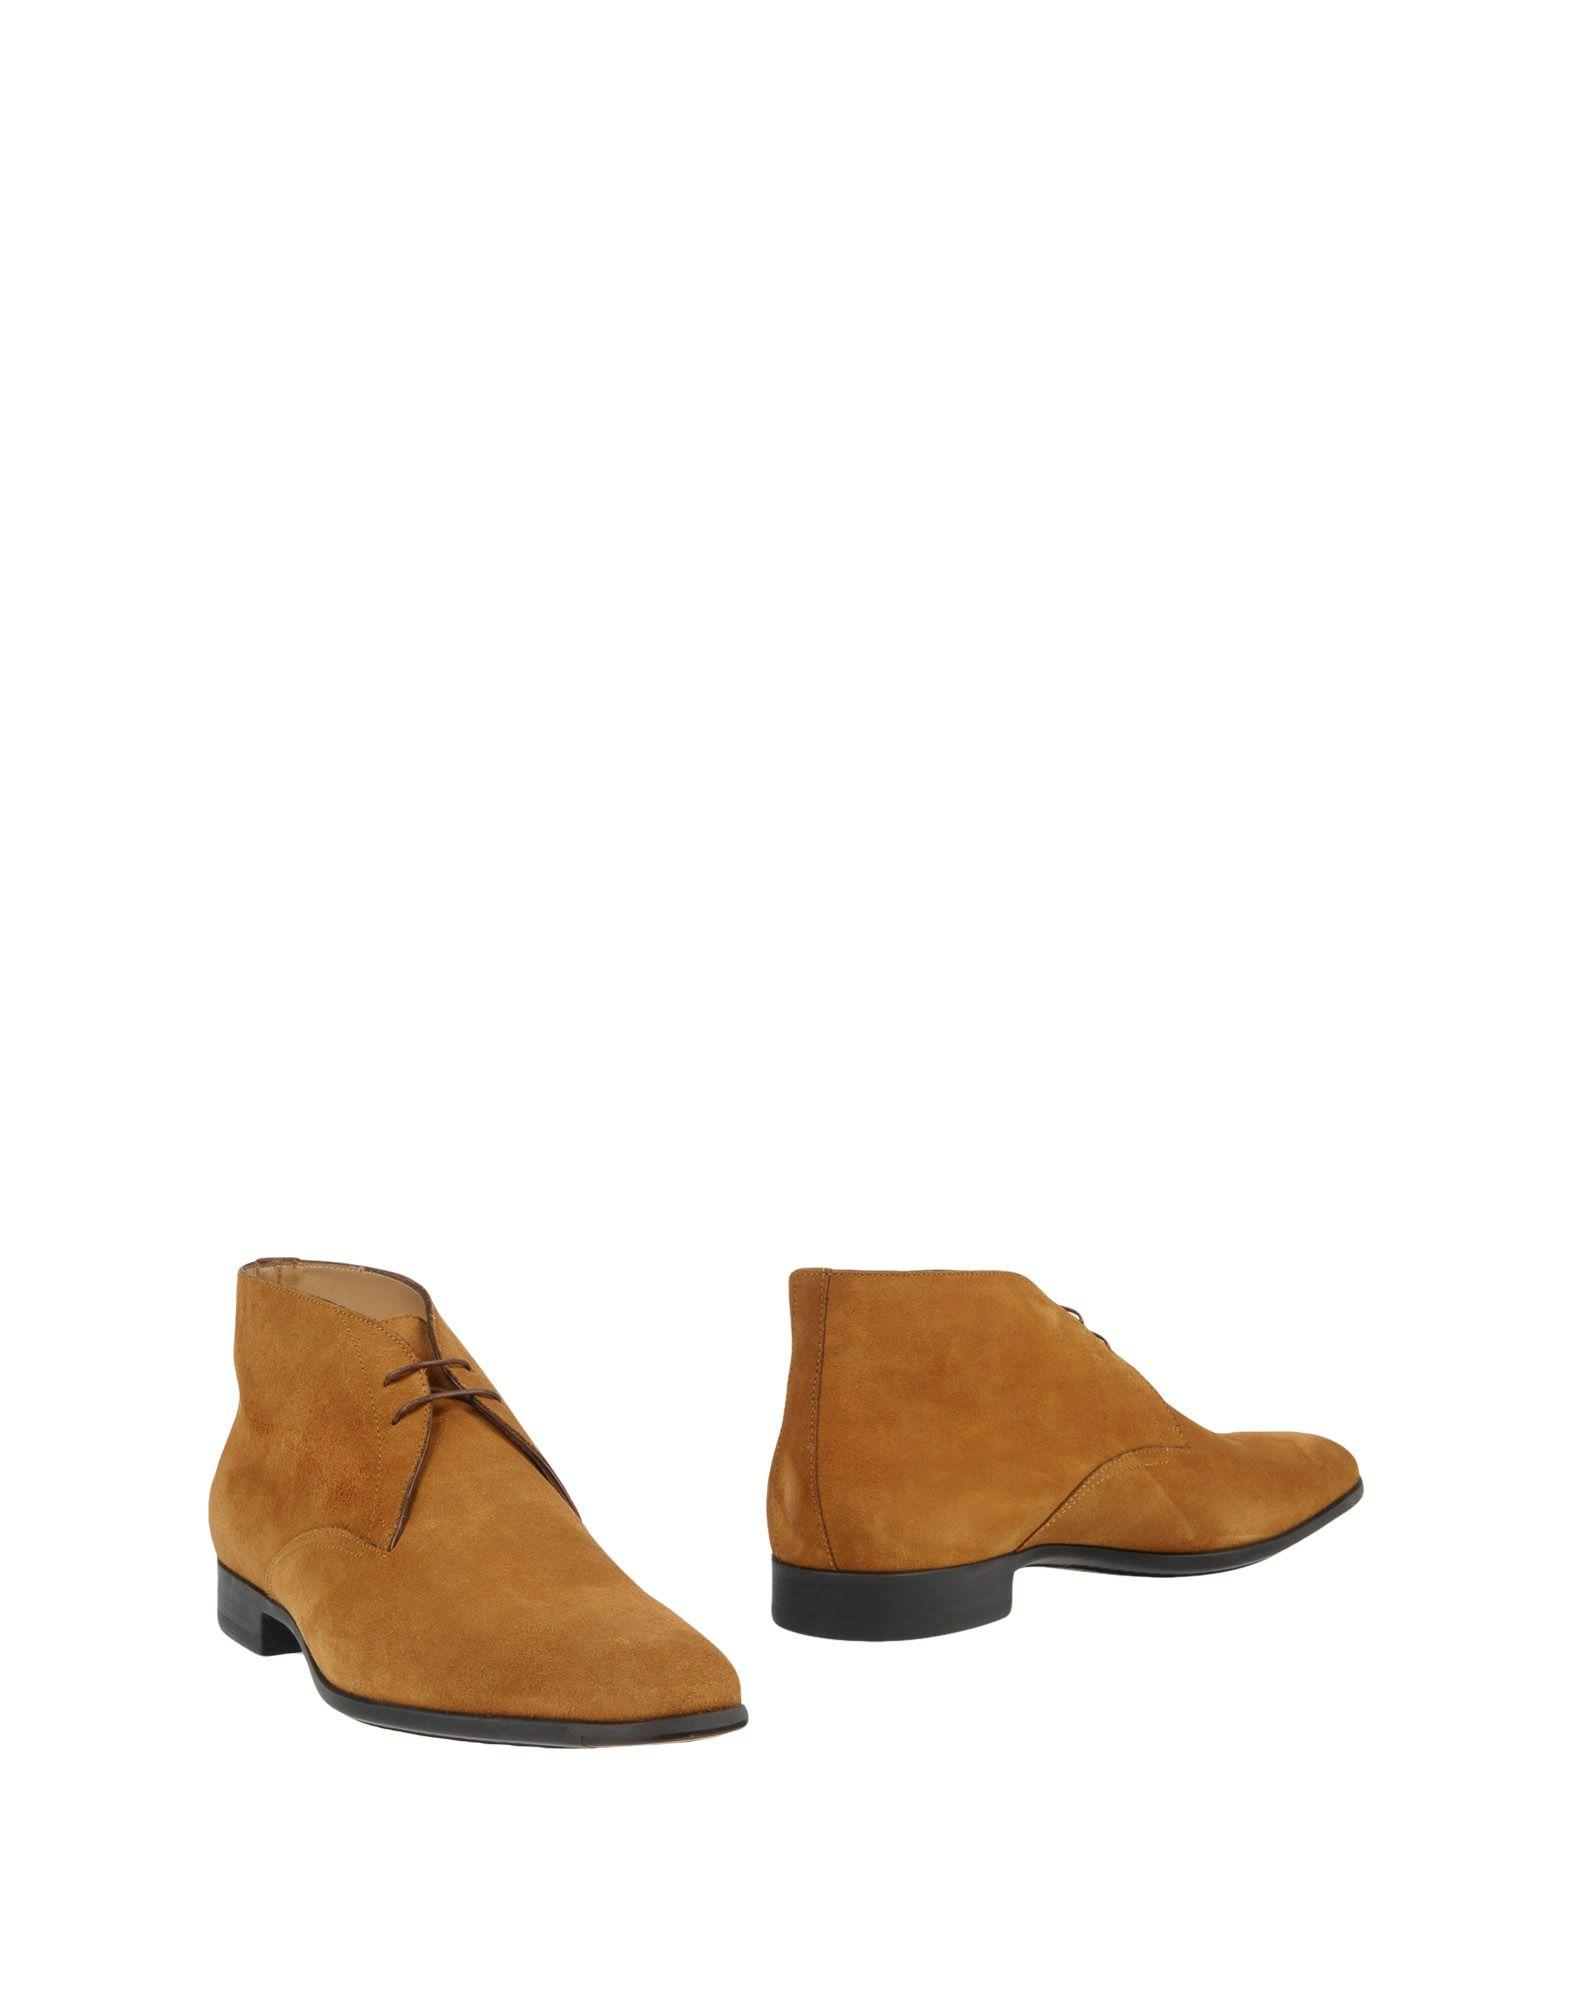 Santoni Ankle Boots In Tan